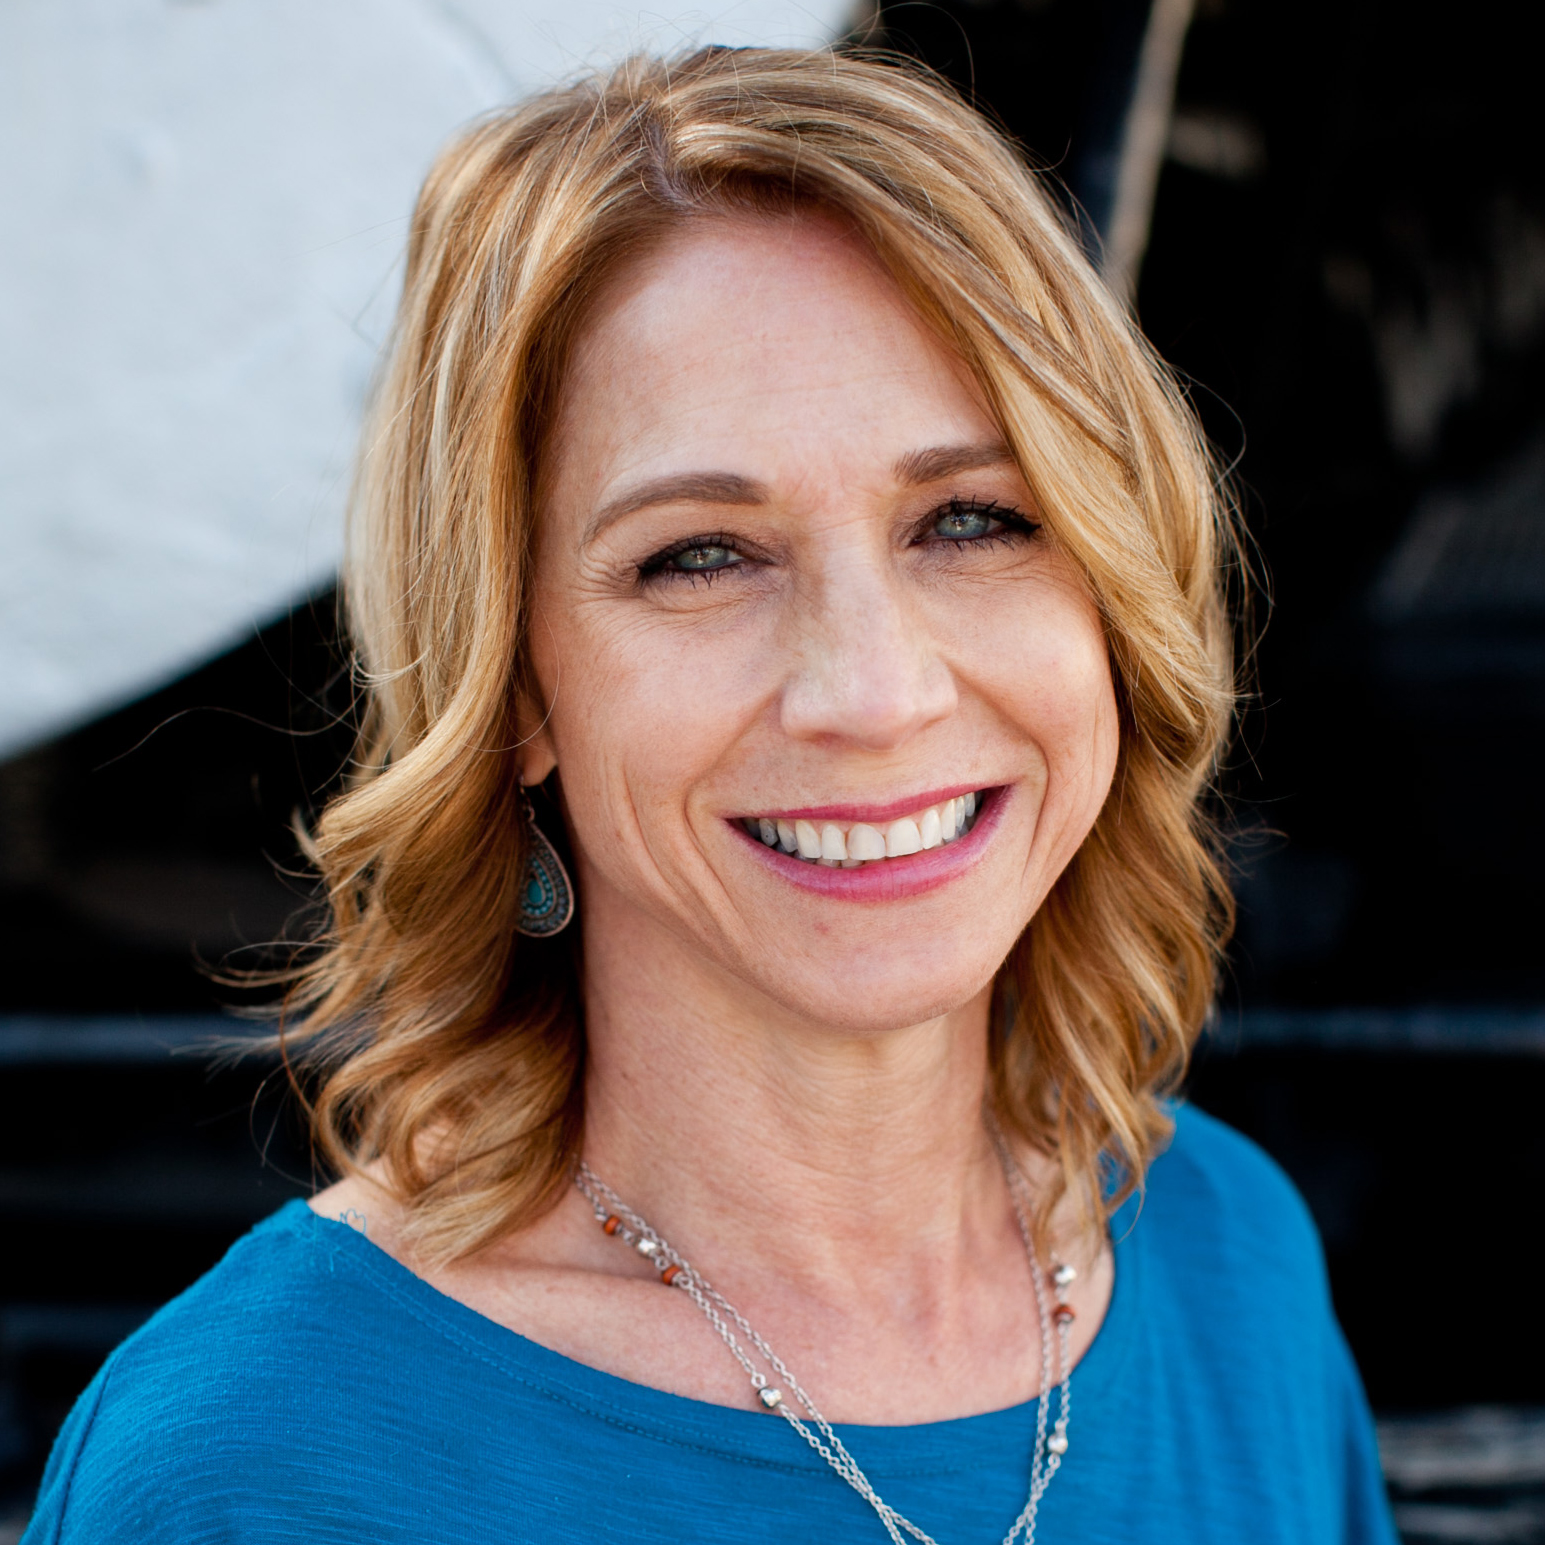 Maria Stidman   Hair Stylist – My name is Maria Stidman, I've been a hair designer for twenty-five years and specialize in hair color and cutting. I enjoy all aspects of doing hair especially the time and knowledge I get from spending time with me clients.   Contact info:  619-997-2505